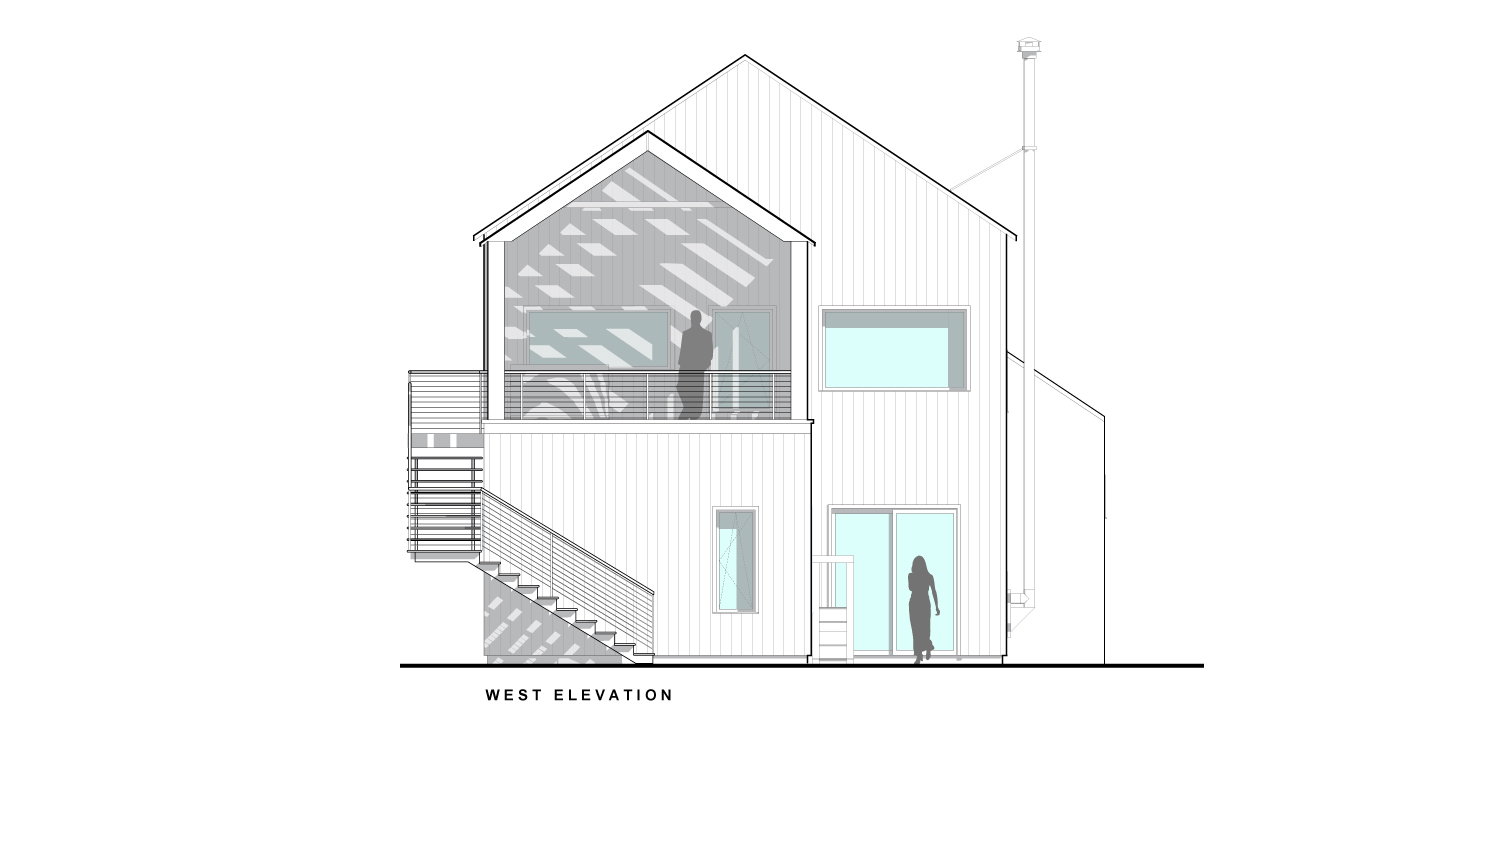 Reed West Elevation